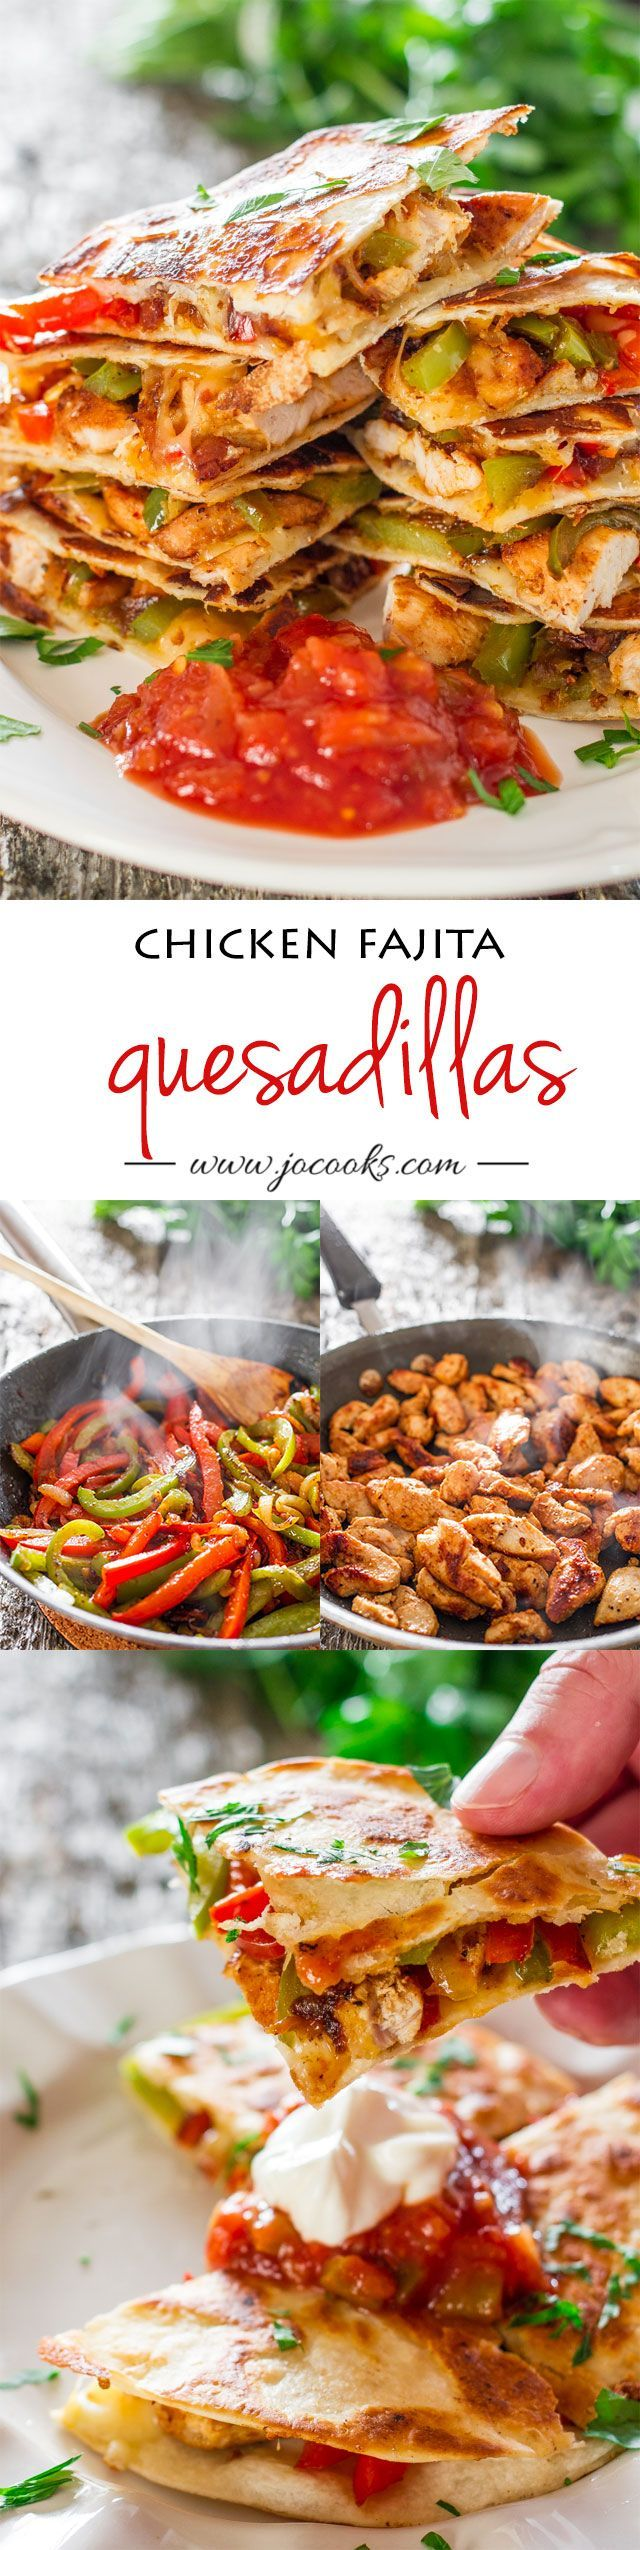 Chicken Fajita Quesadillas - sauteed onions, red and green peppers, perfectly seasoned chicken breast, melted cheese, between two tortillas. Simply yummy. @jocooks